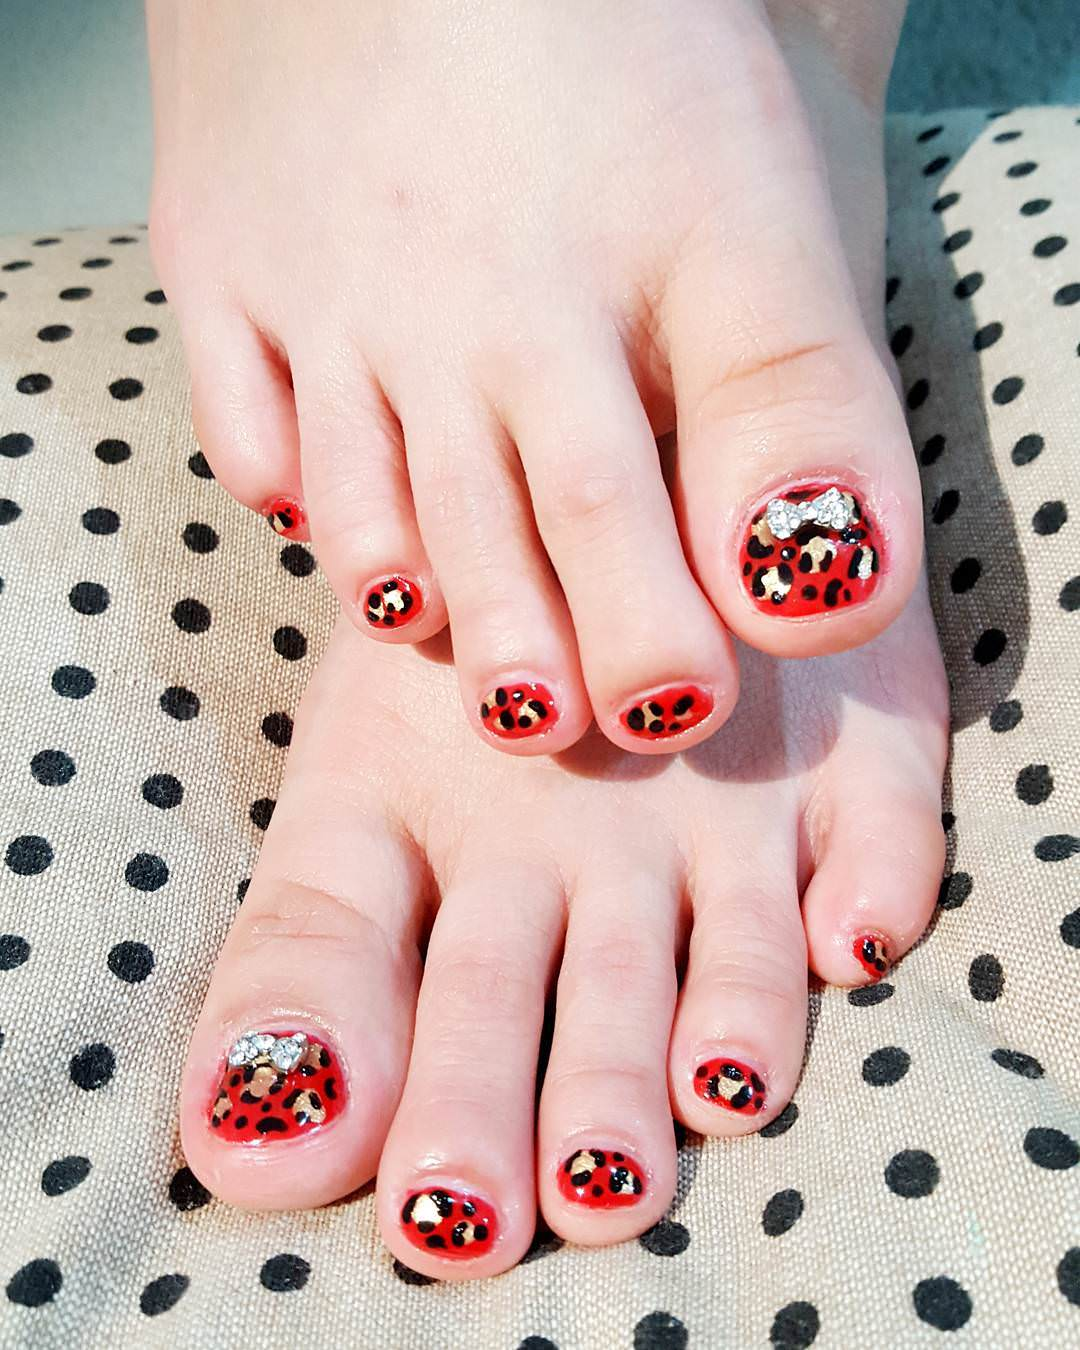 Wondrous Toe Nail Design